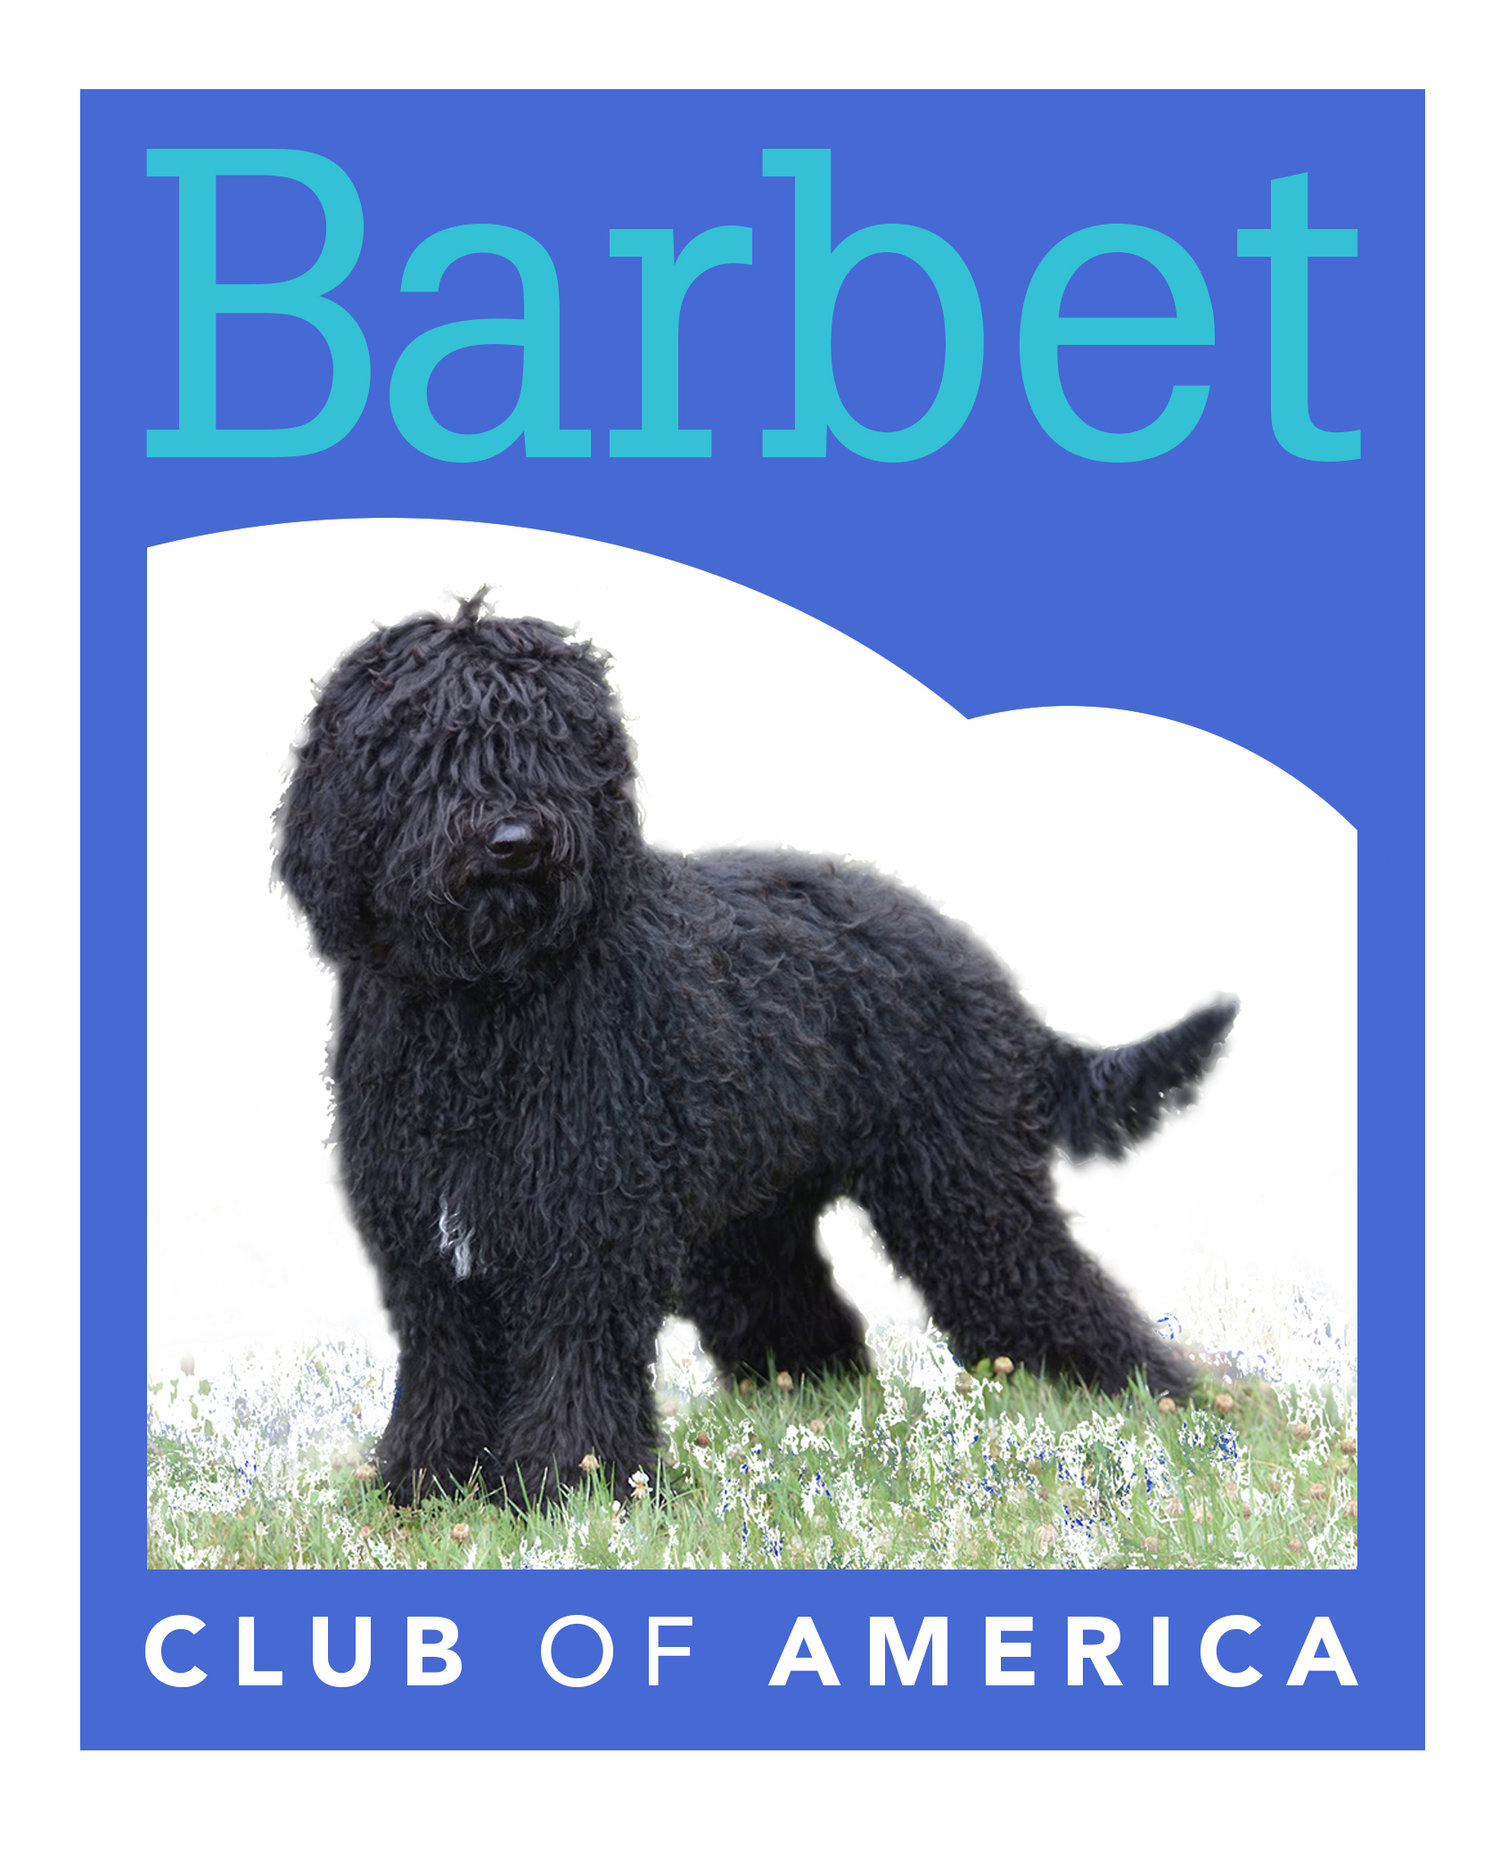 Barbet Club of America - Official Site